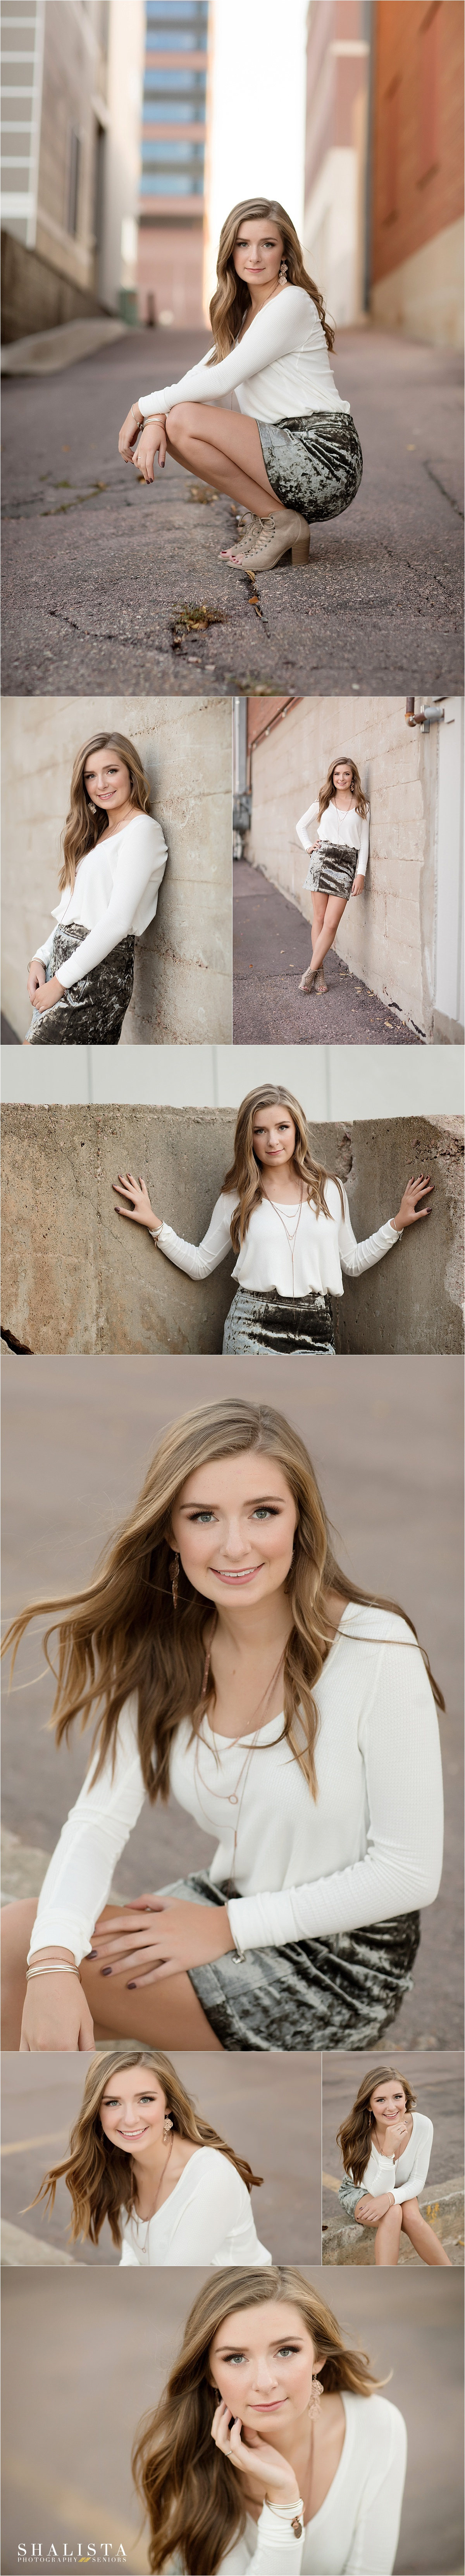 Sioux Falls Local Best Photographer